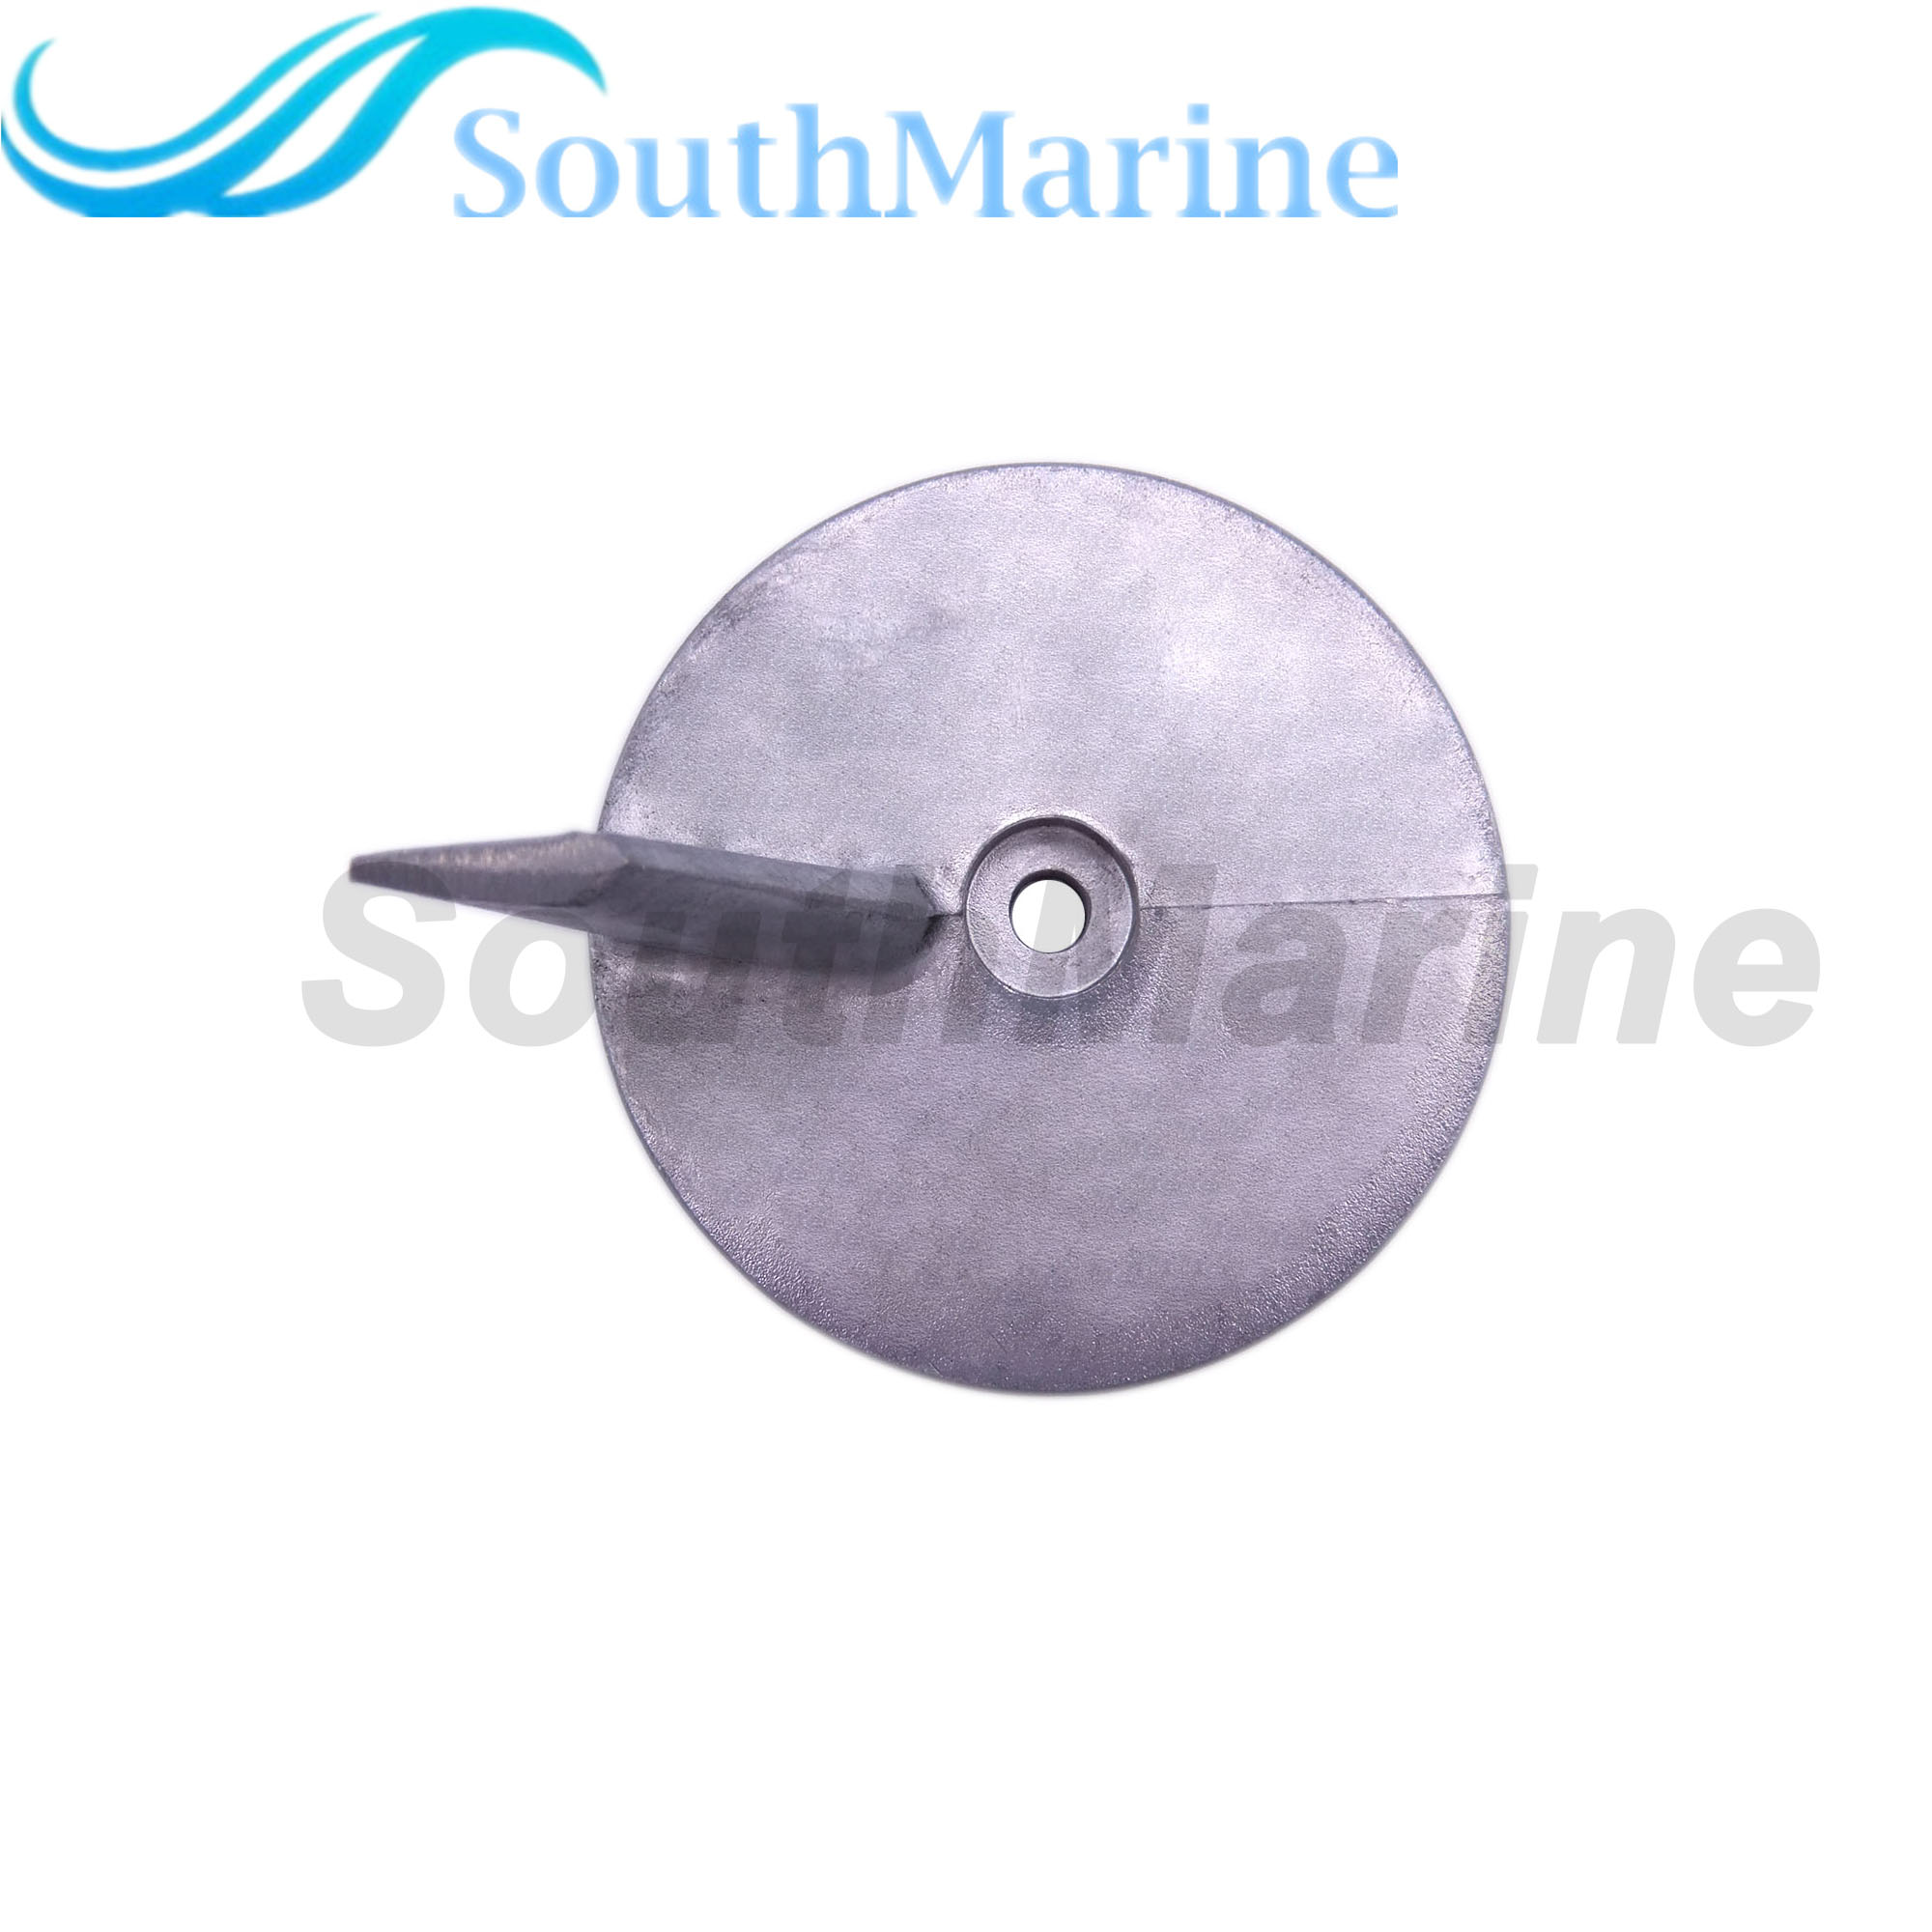 82795M 82795T Trim Tab Anode For Mercury Quicksilver Outboard Engine 20HP 25HP 30HP , Sierra 18-6096